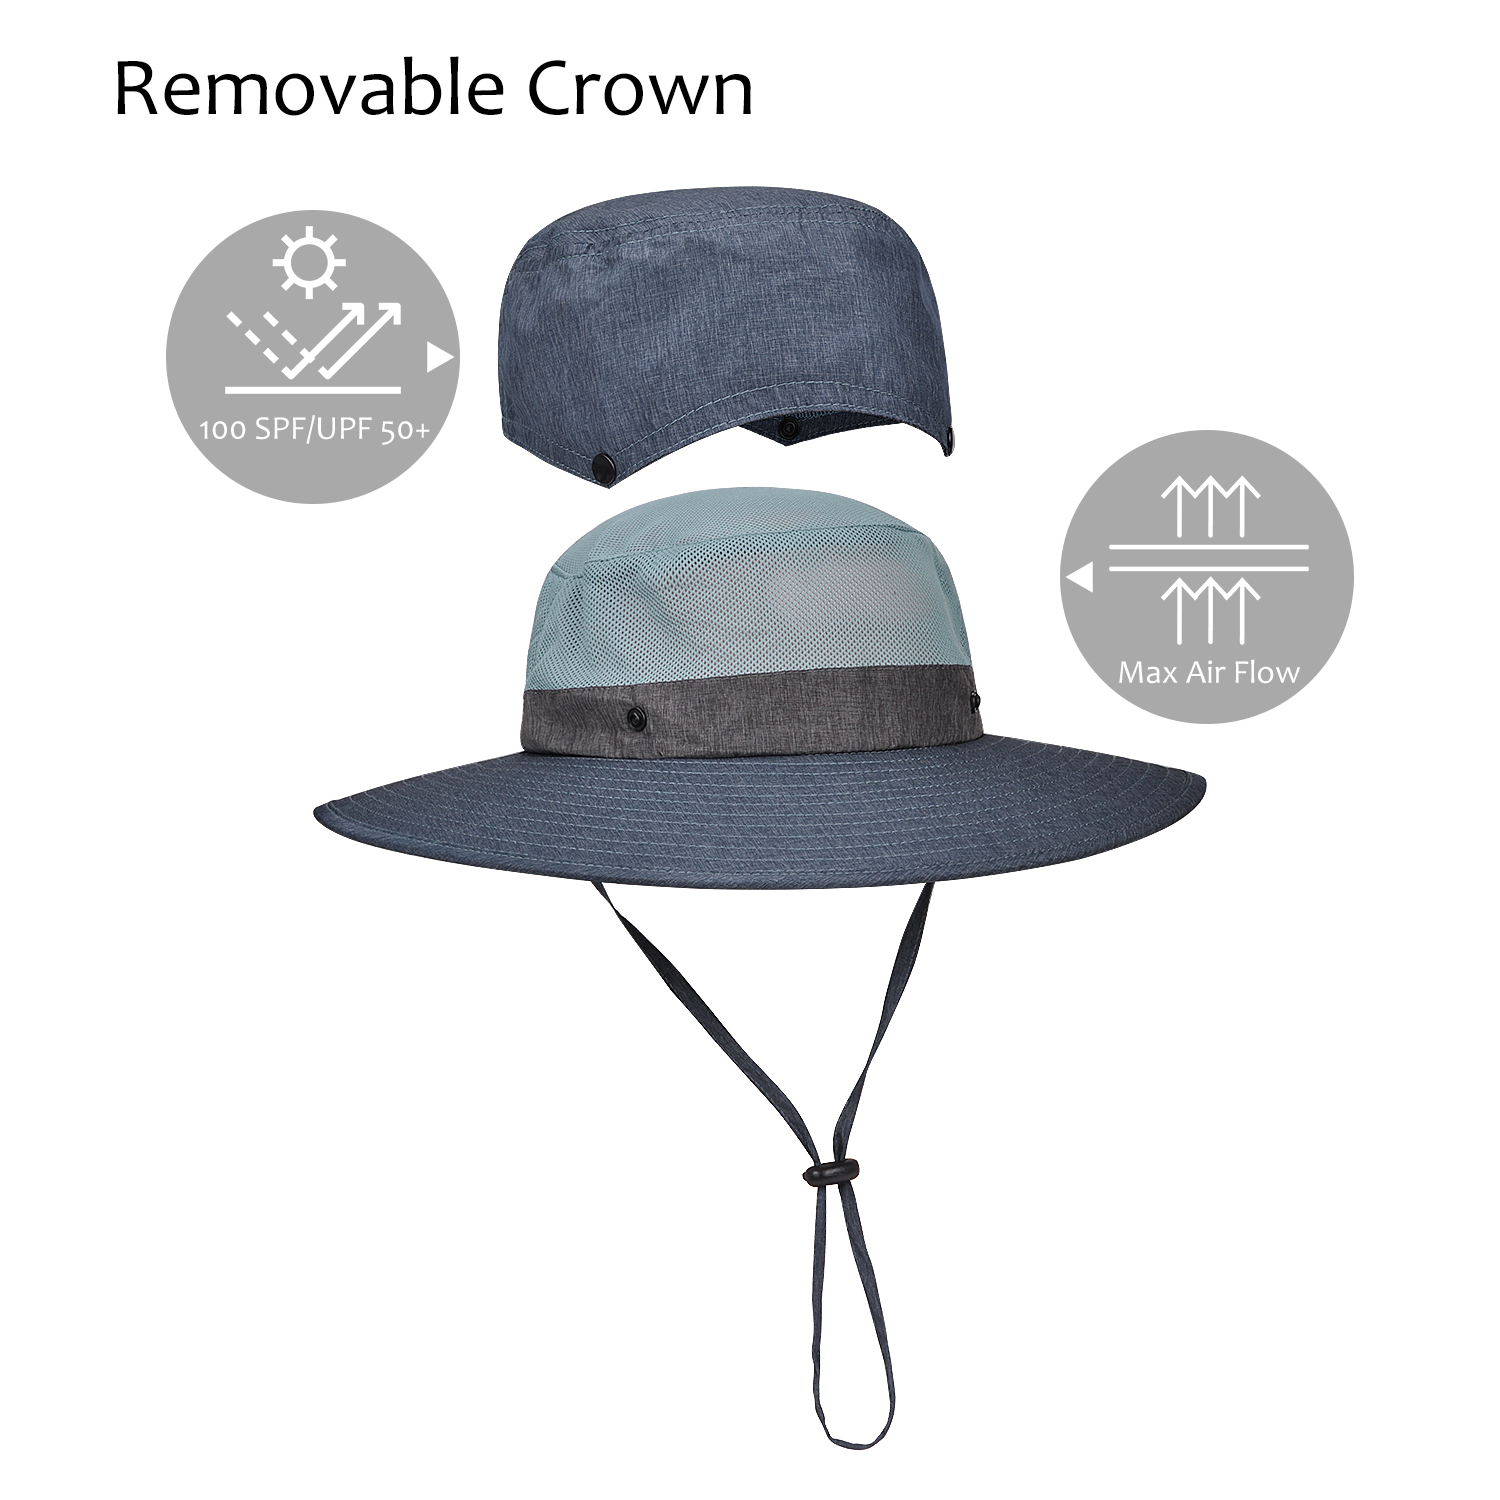 12cf6da2989 Tirrinia Unisex Safari Sun Hat Wide Brim Boonie Cap with Adjustable  Drawstring and Removable Bucket Crown for Camping Hiking Fishing Hunting  Boating ...